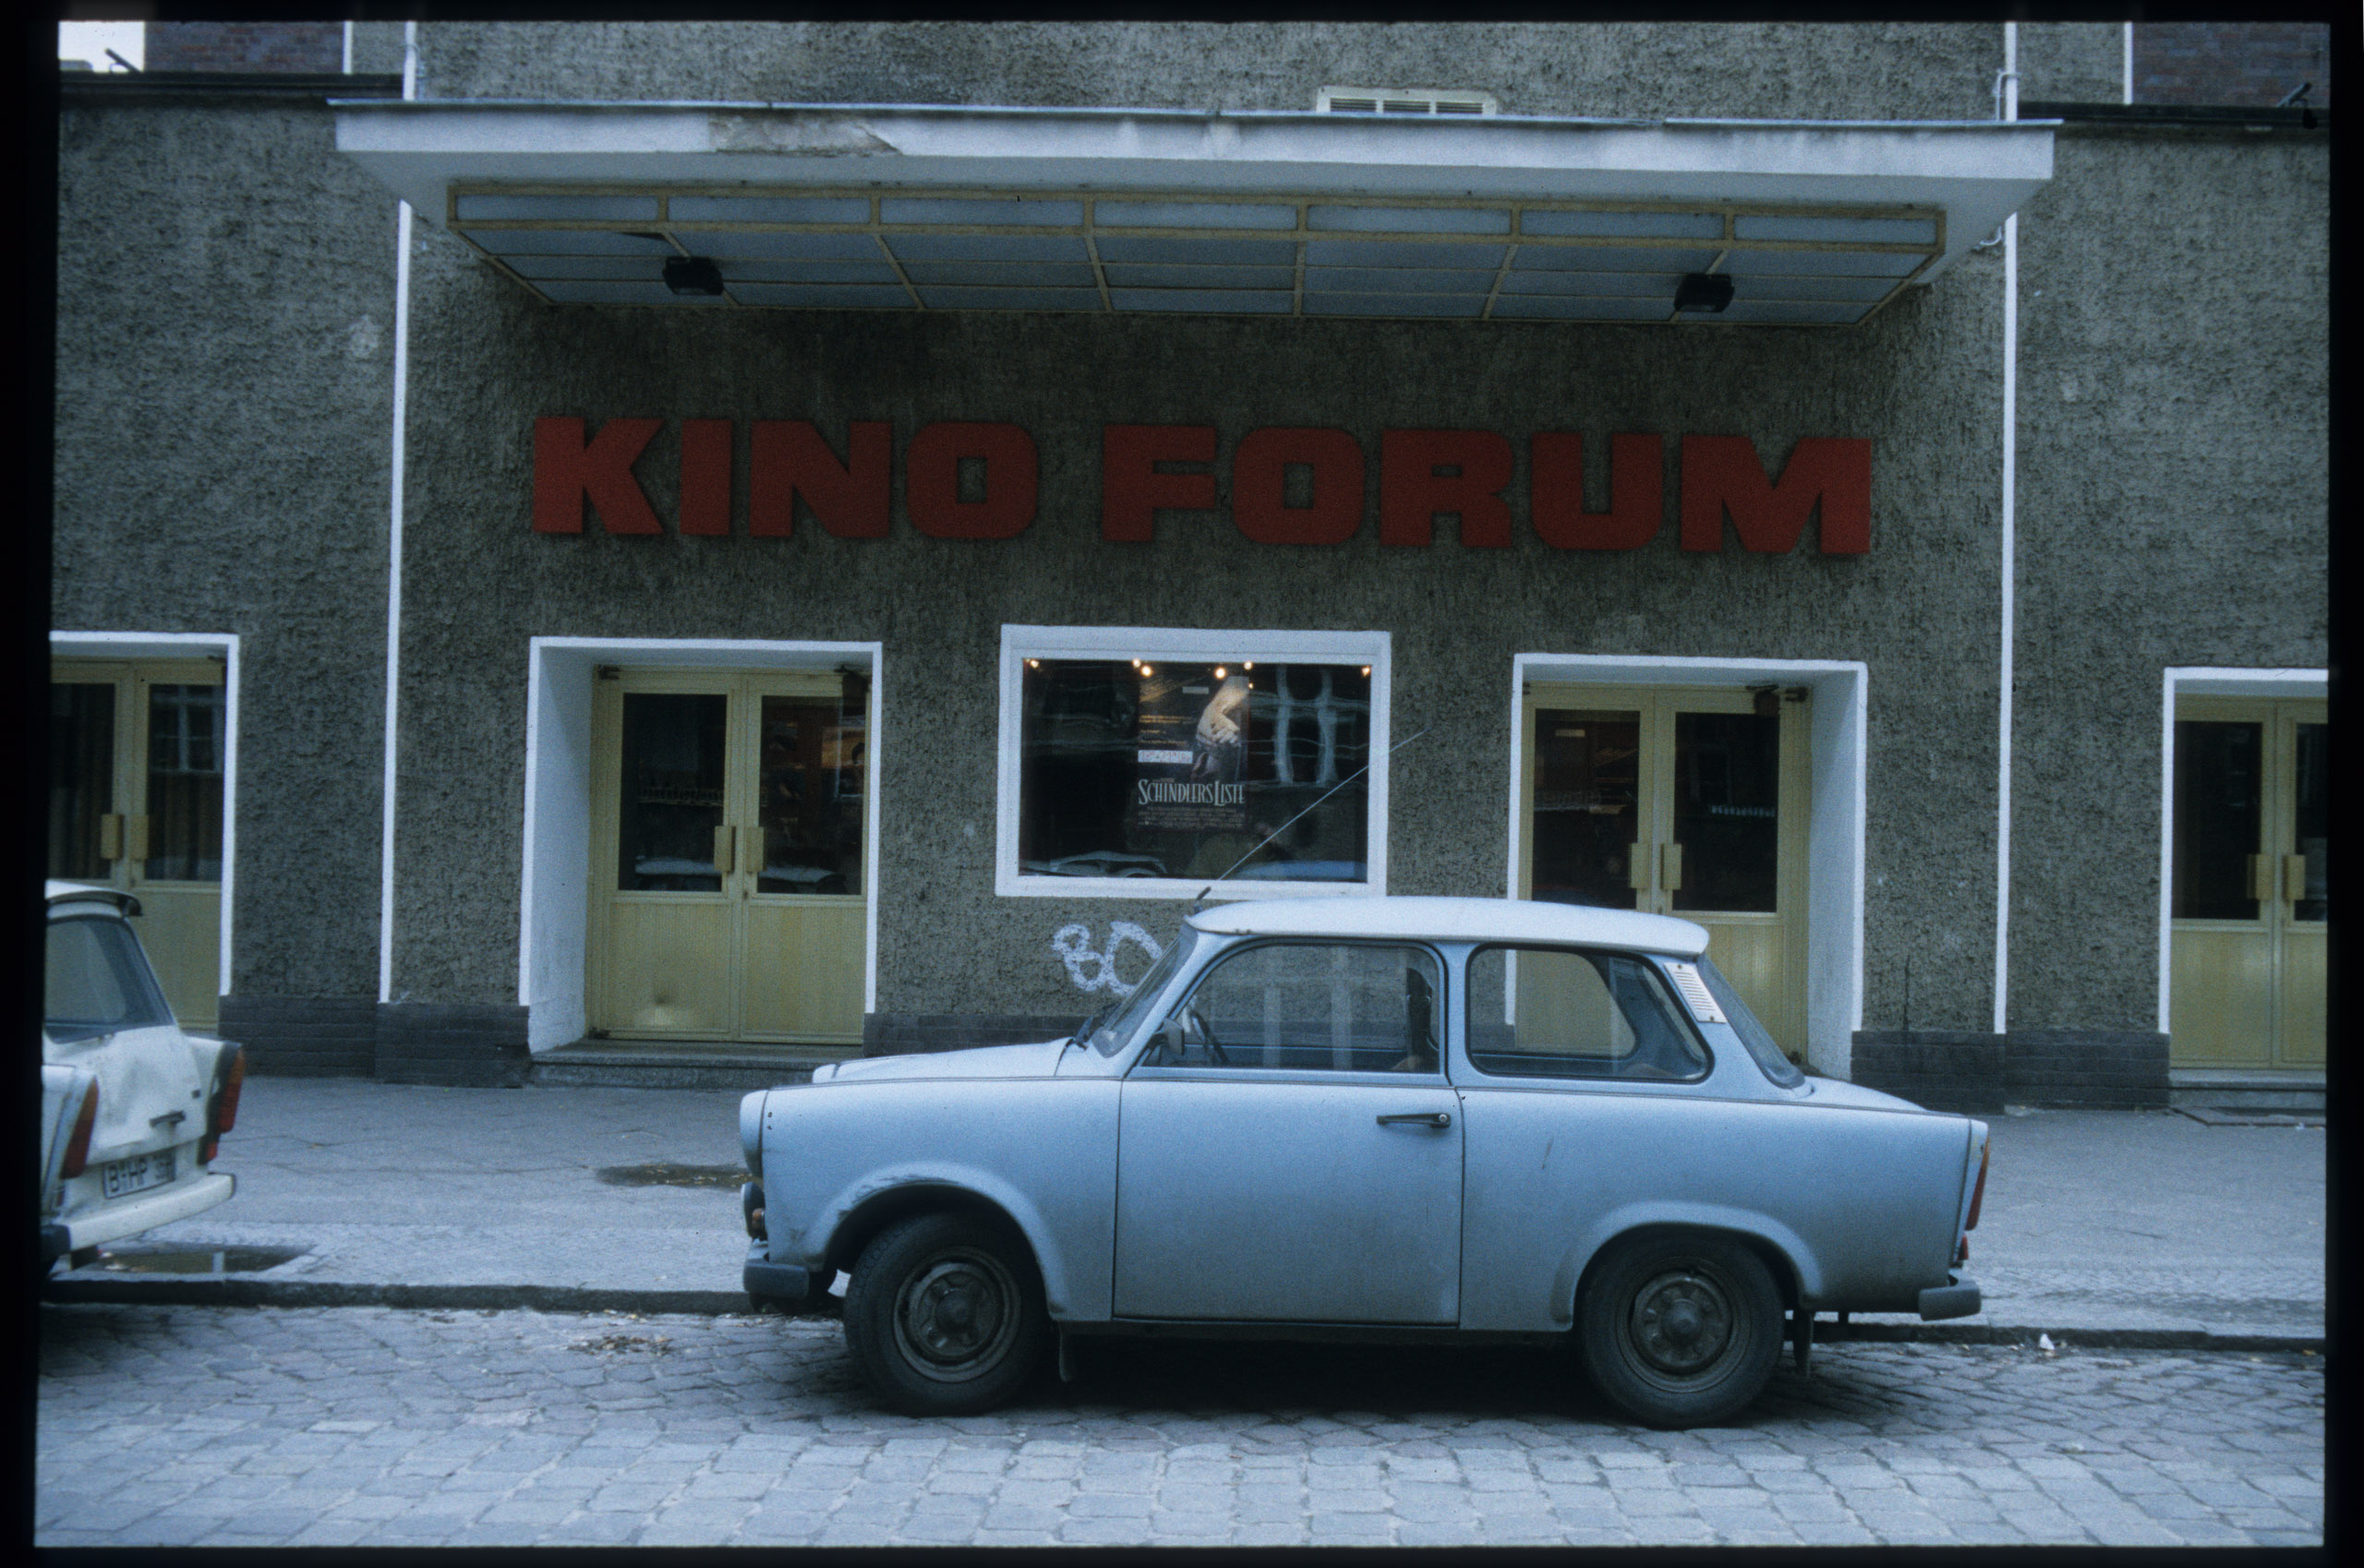 Color photo: cinema entrance with lettering